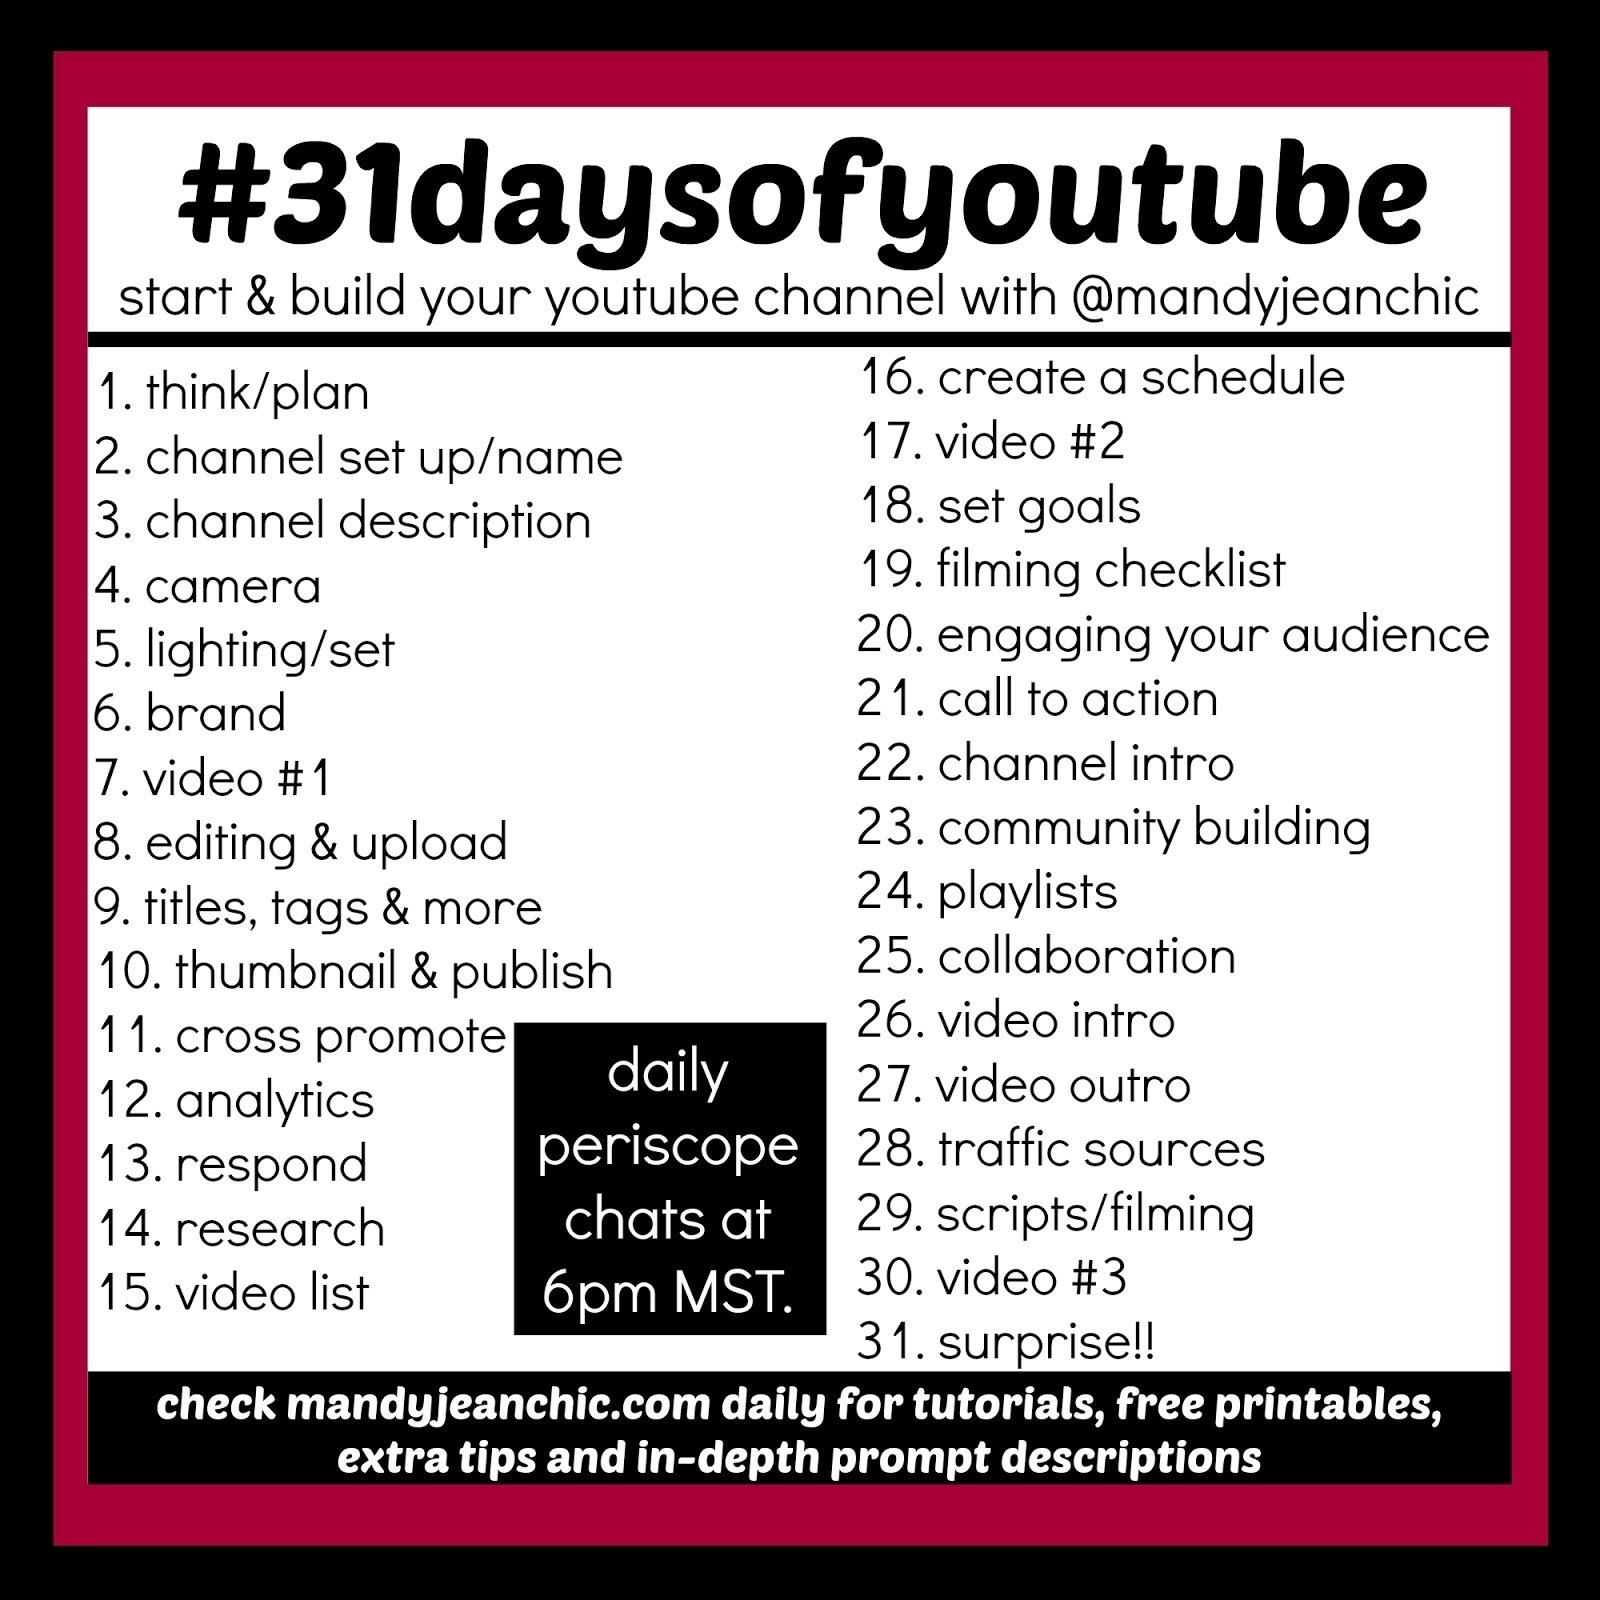 mandy jean chic: #31daysofyoutube day 1- think/plan, organizing your